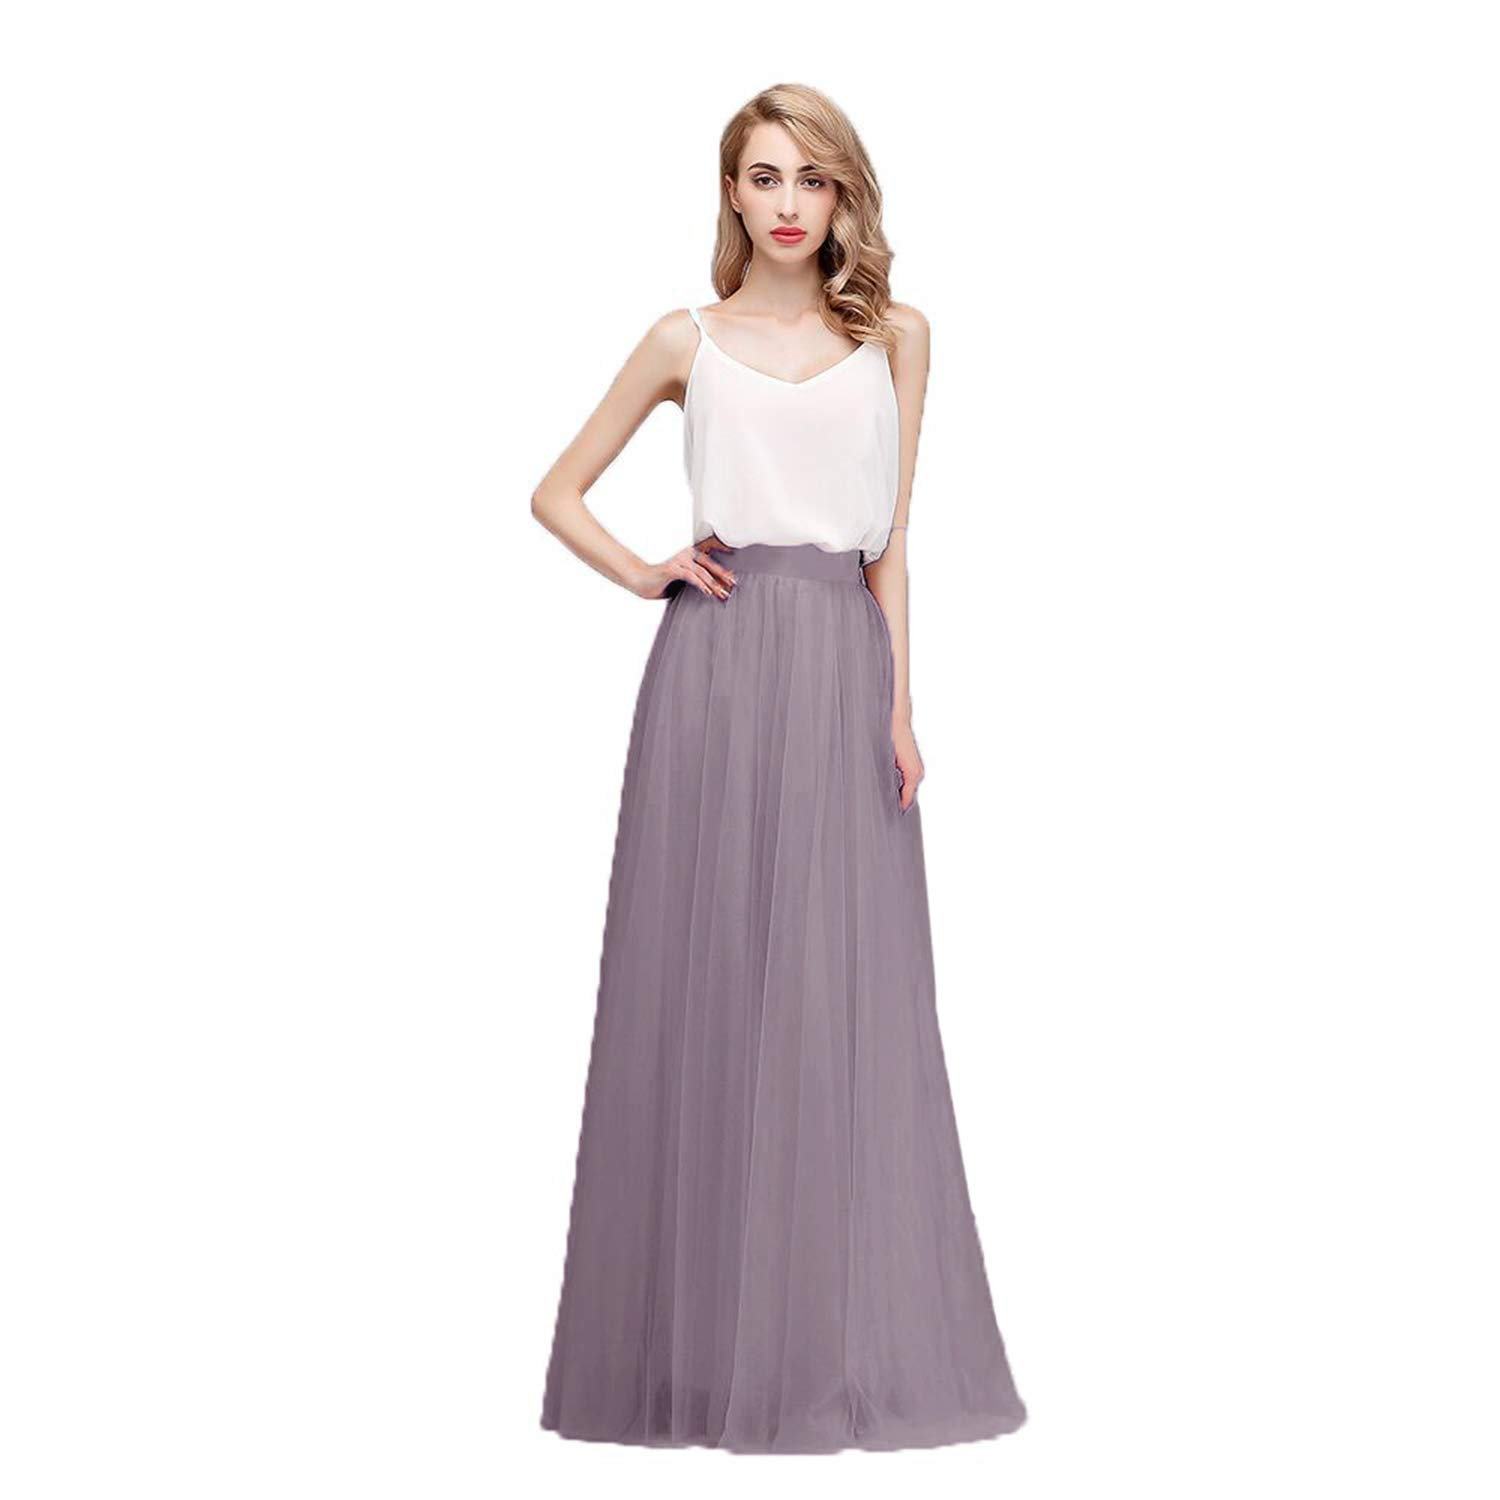 Honey Qiao Women's Maxi High Waist Skirts Grey Tulle Holiday Formal Skirt by Honey Qiao